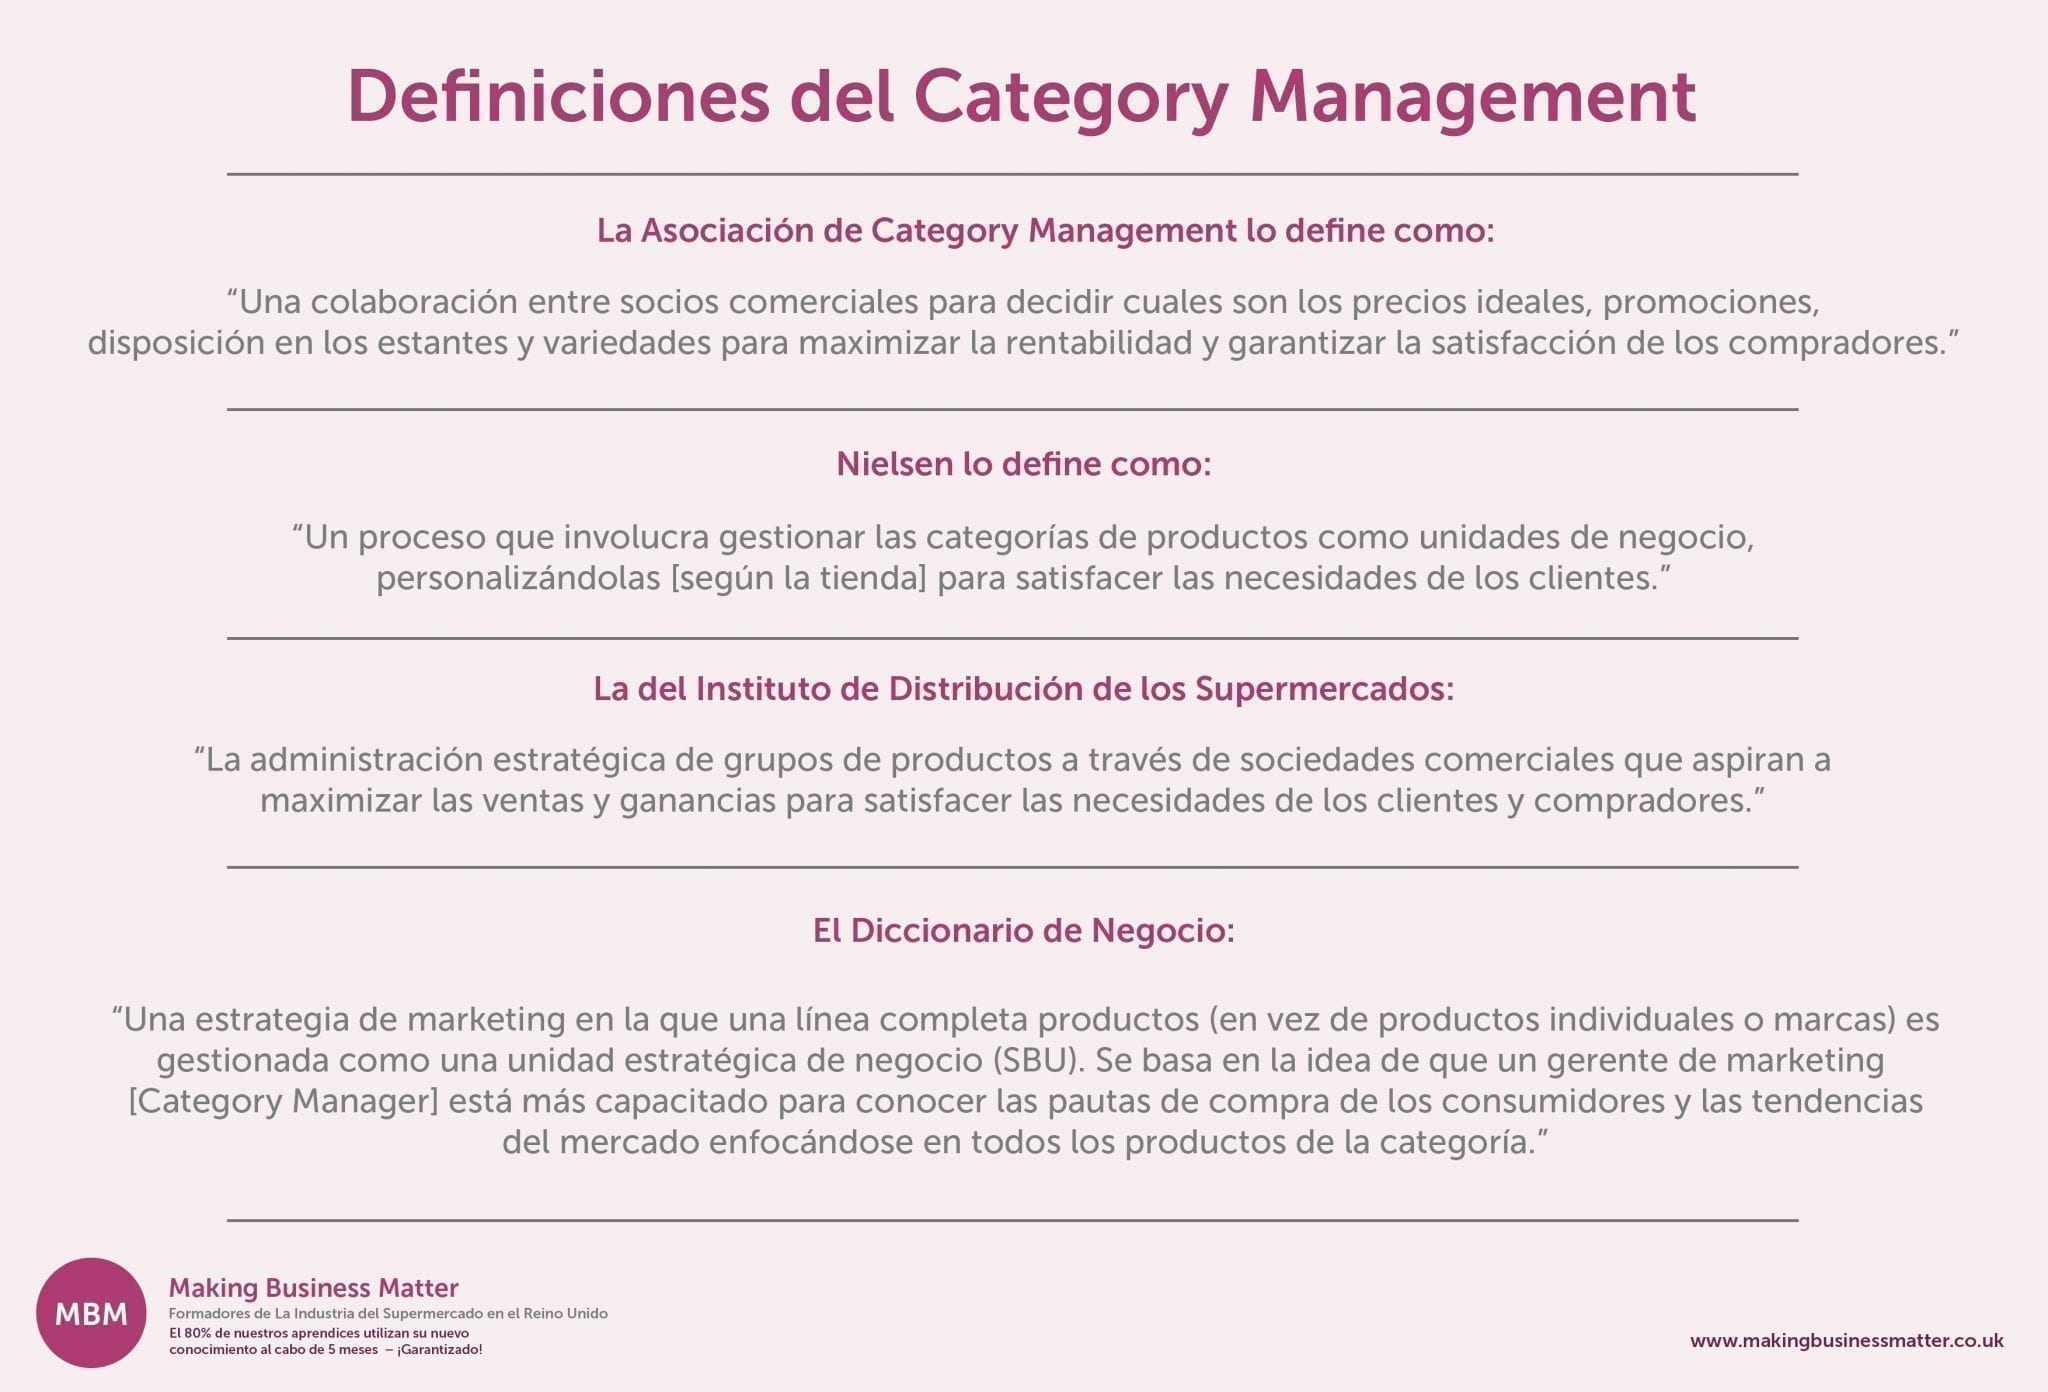 Definiciones del Category Management